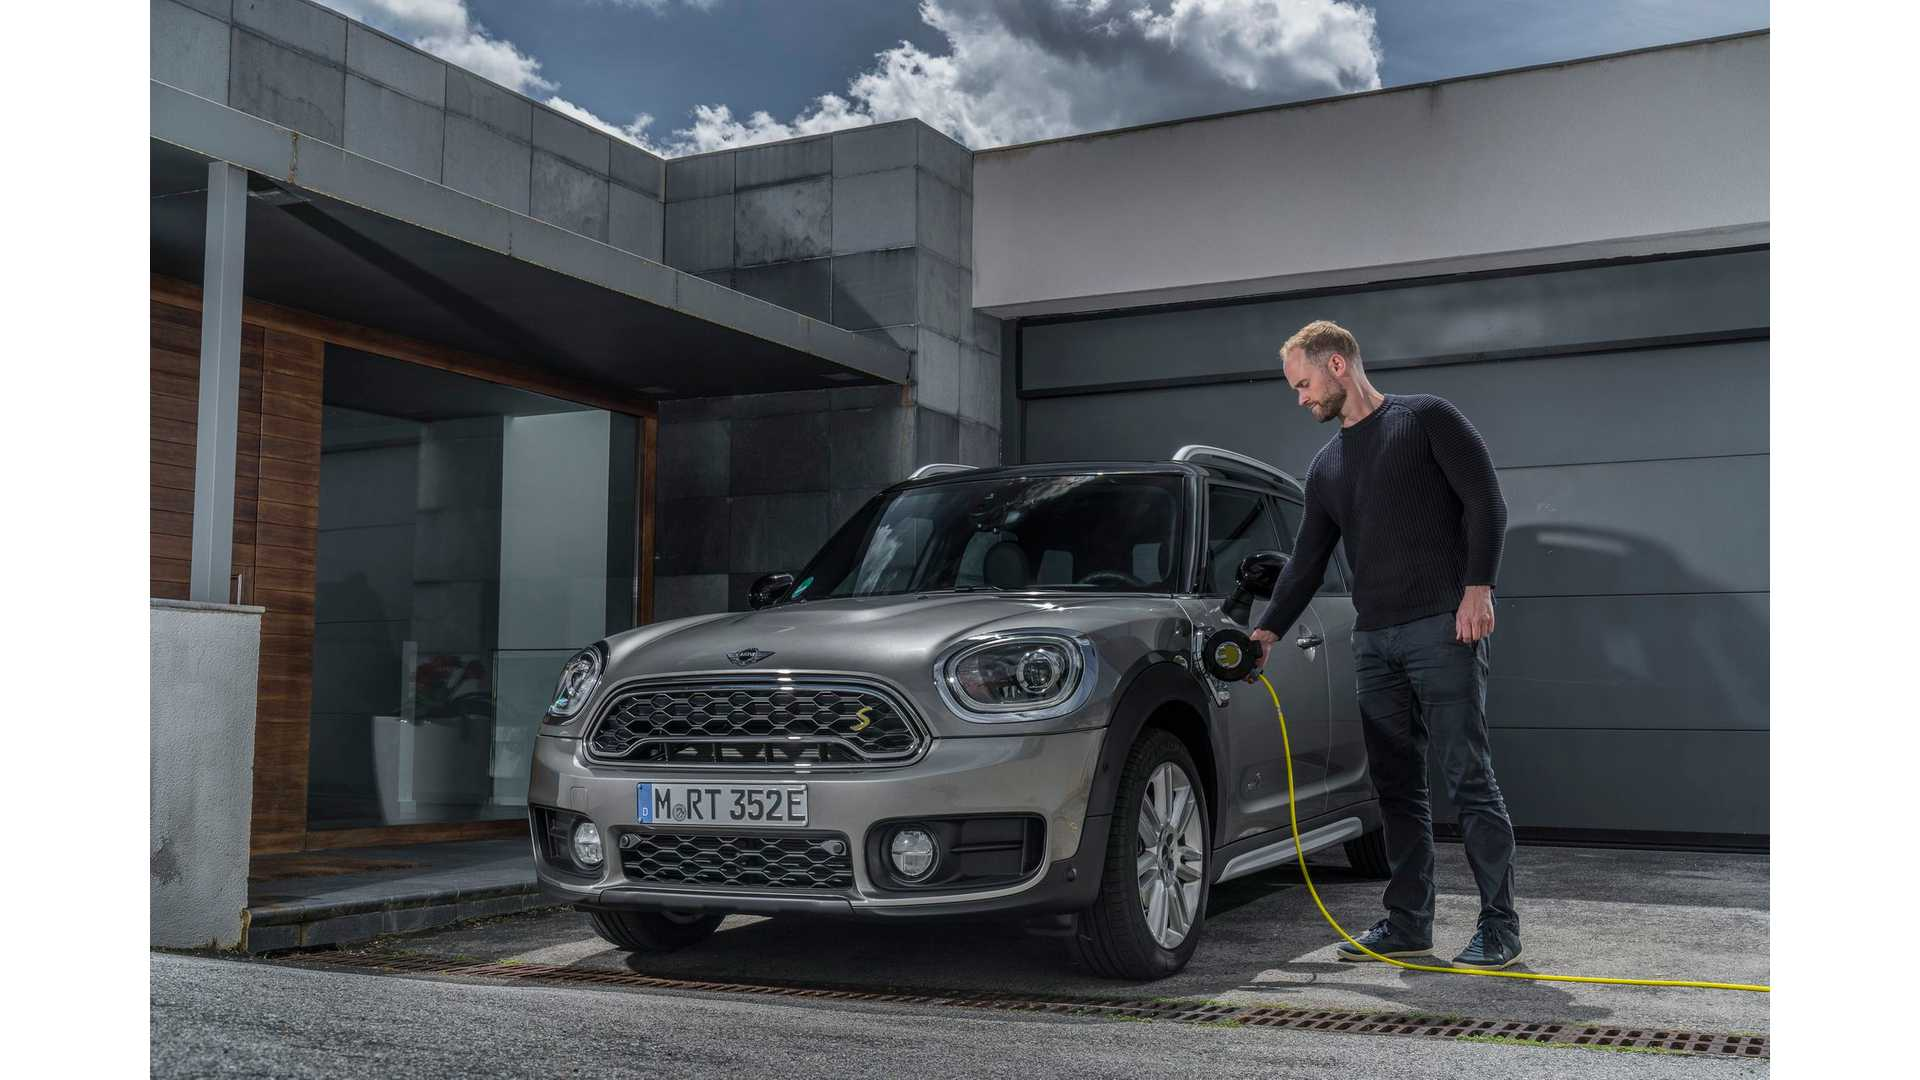 Mini Cooper S E Countryman All4 Full Specs New Gallery Arrives In June